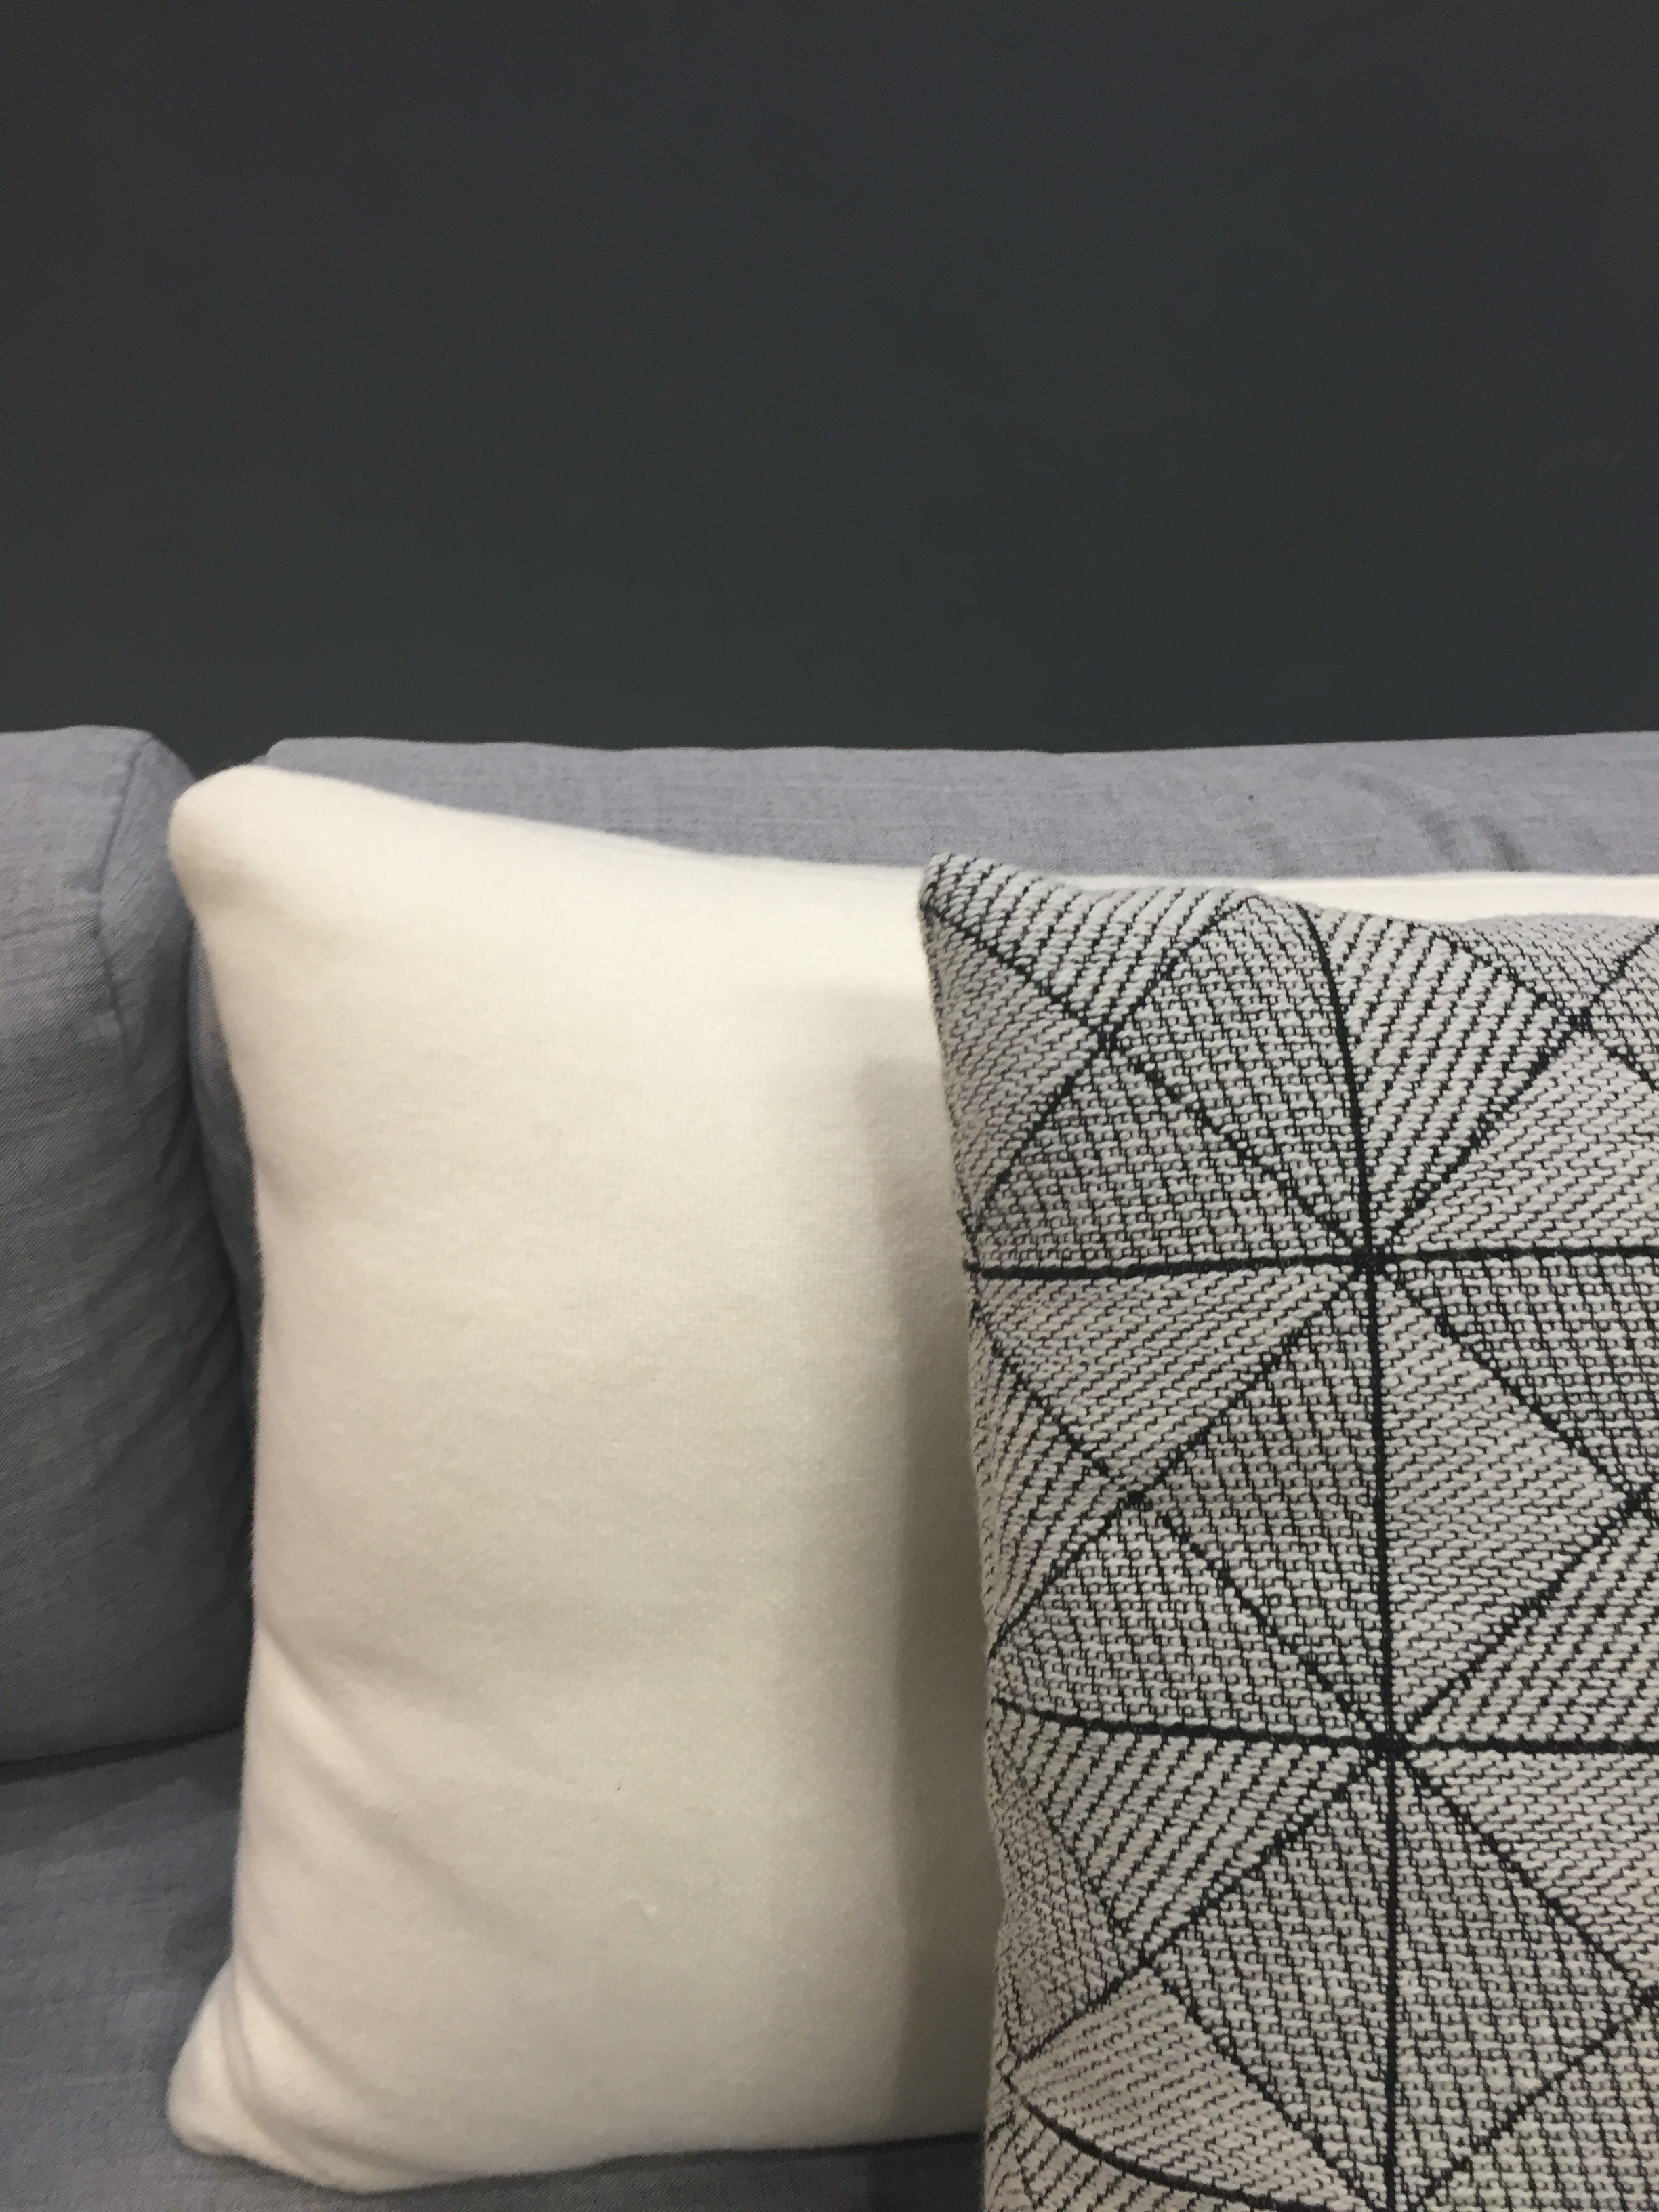 A close up of the Hay Dot cushion and Muuto Tile cushion.